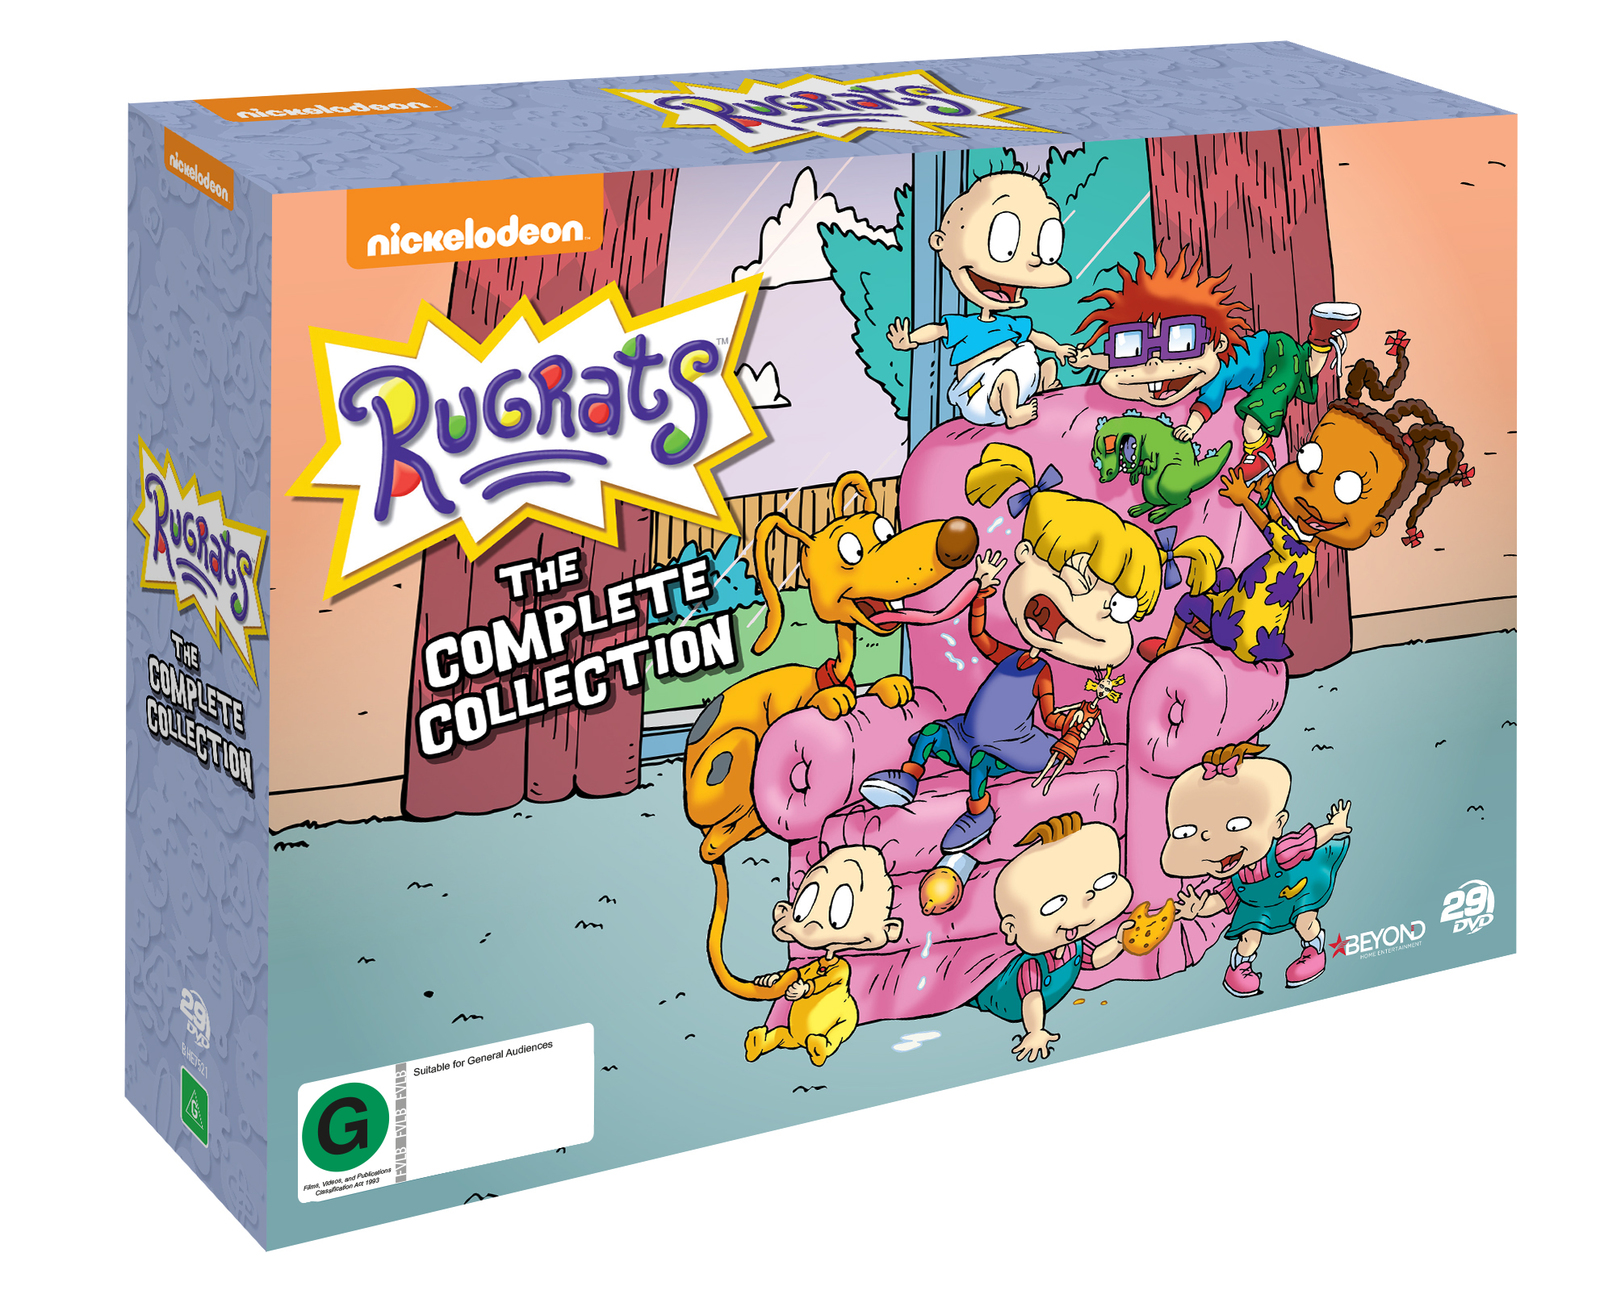 Rugrats Complete Collection   DVD   Buy Now   at Mighty Ape NZ